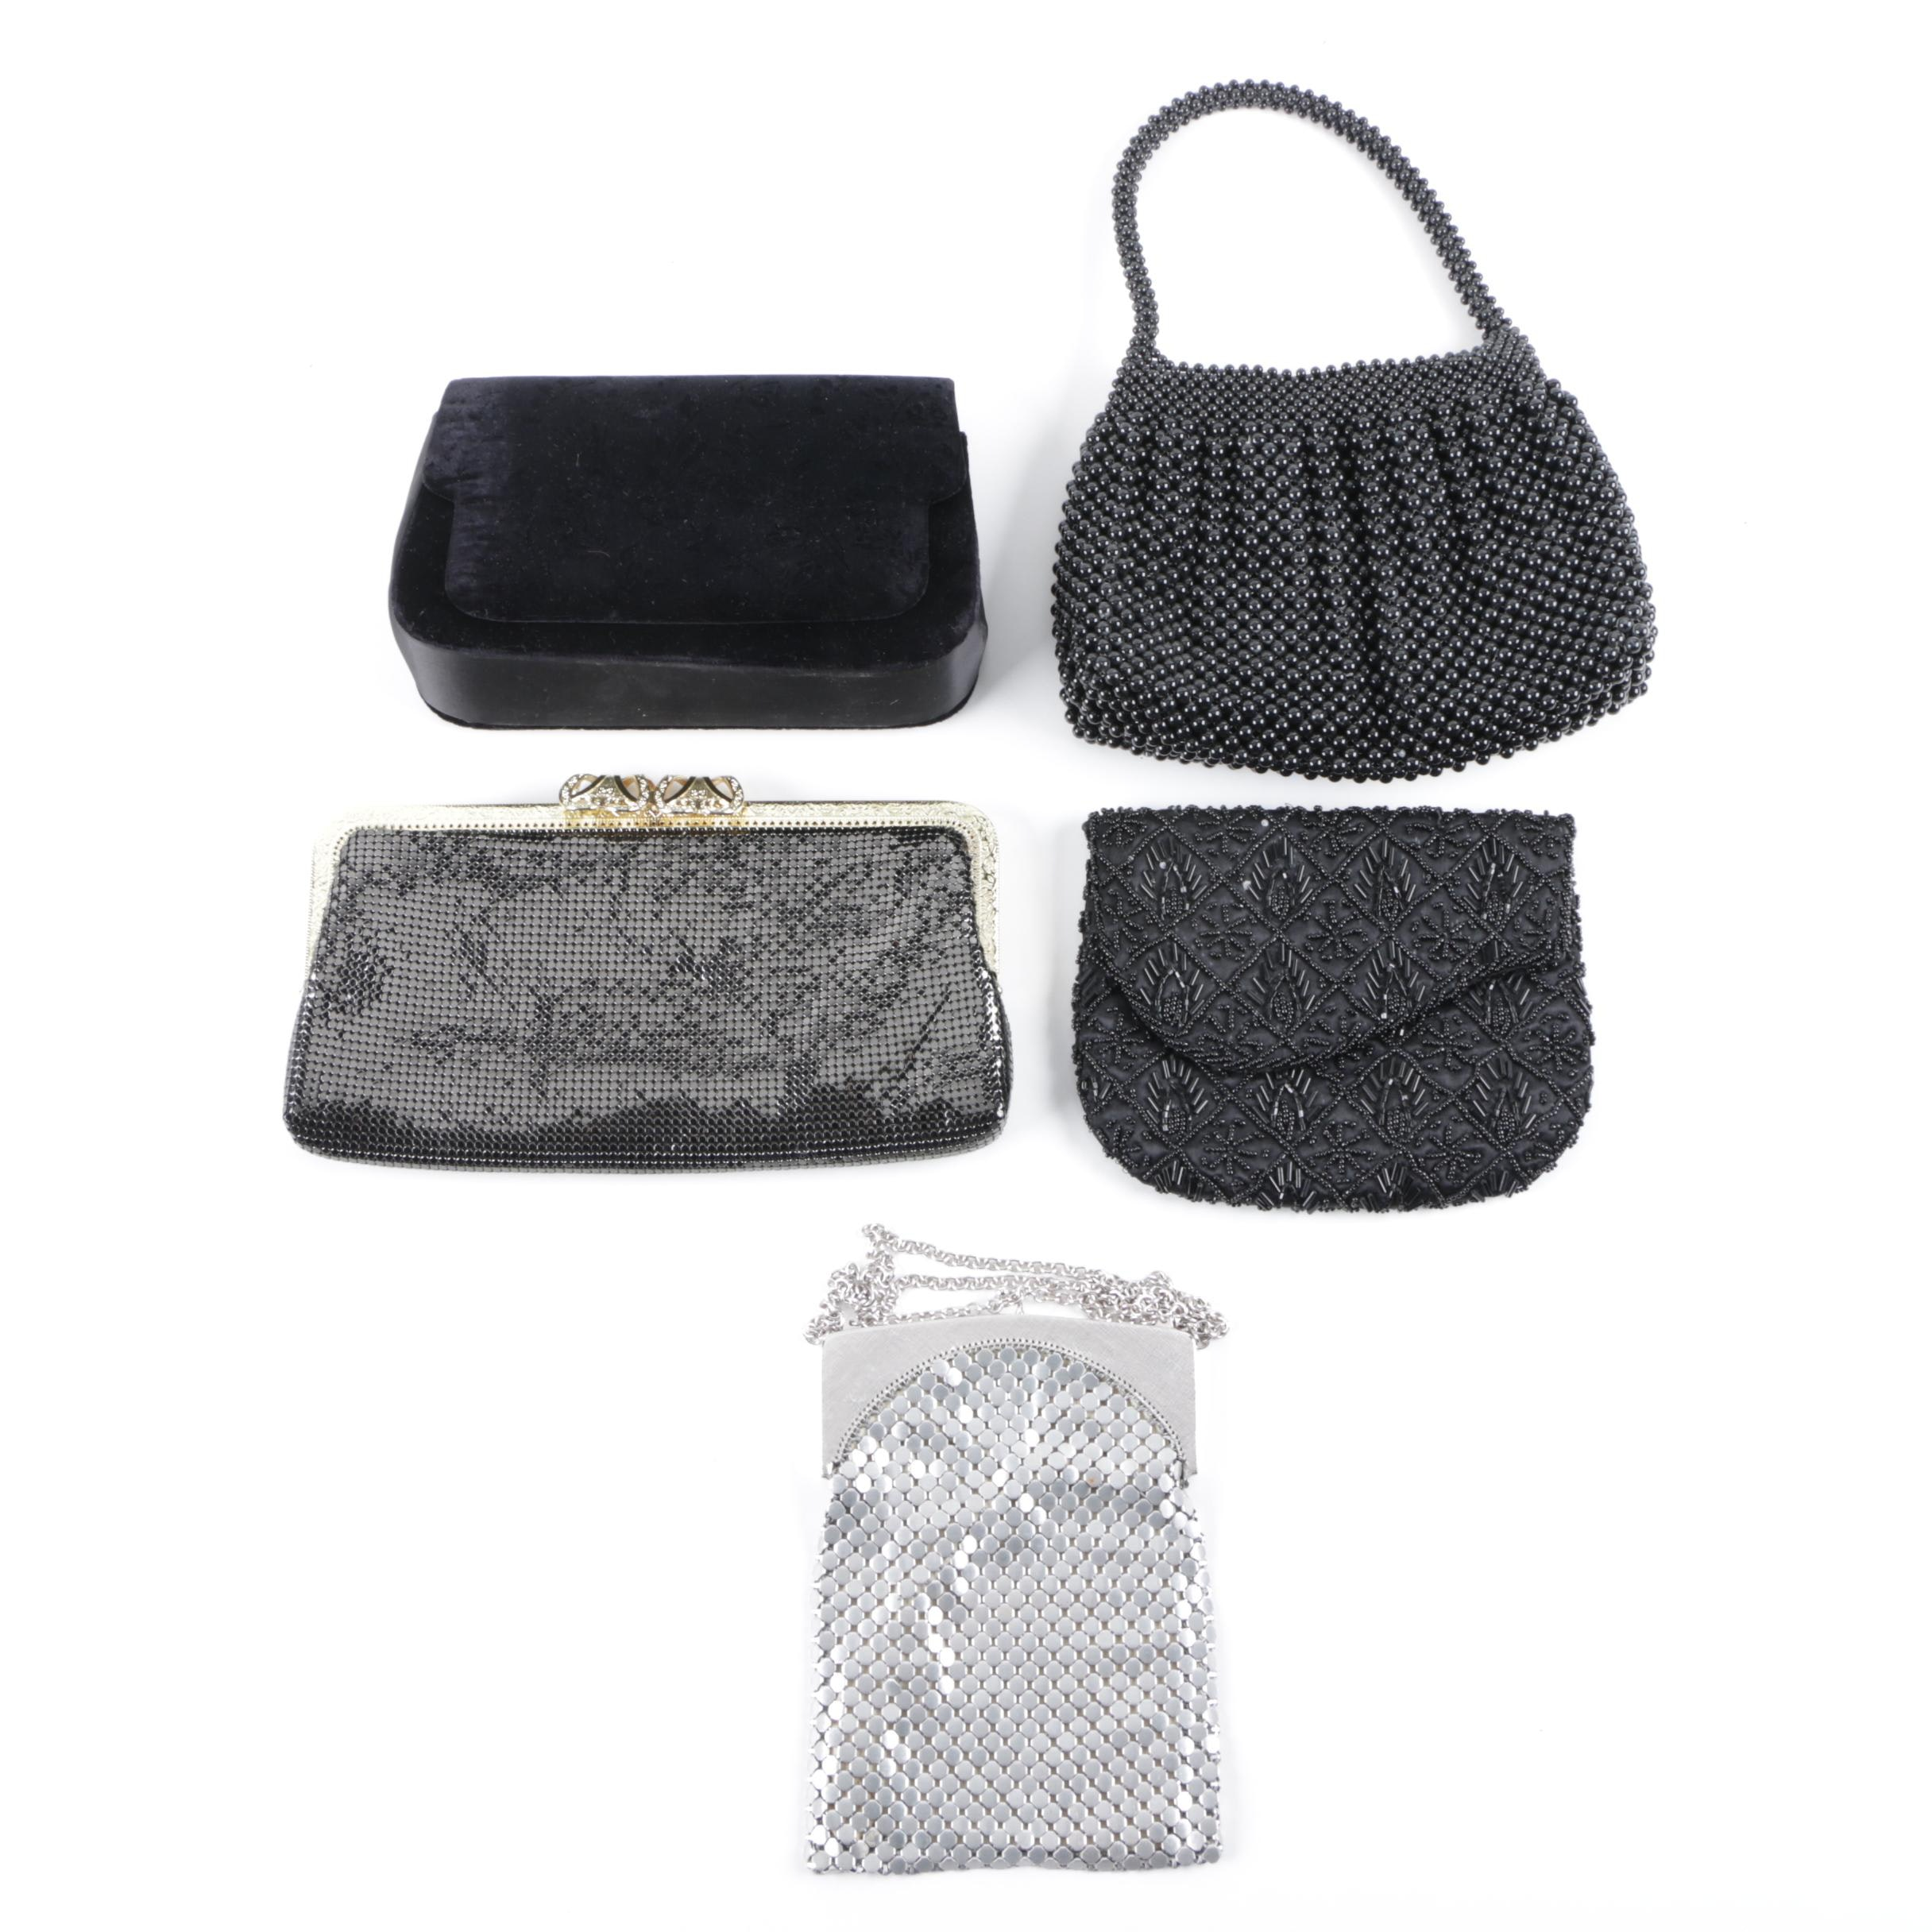 Metal Mesh, Beaded and Velvet Evening Bags Including Whiting and Davis